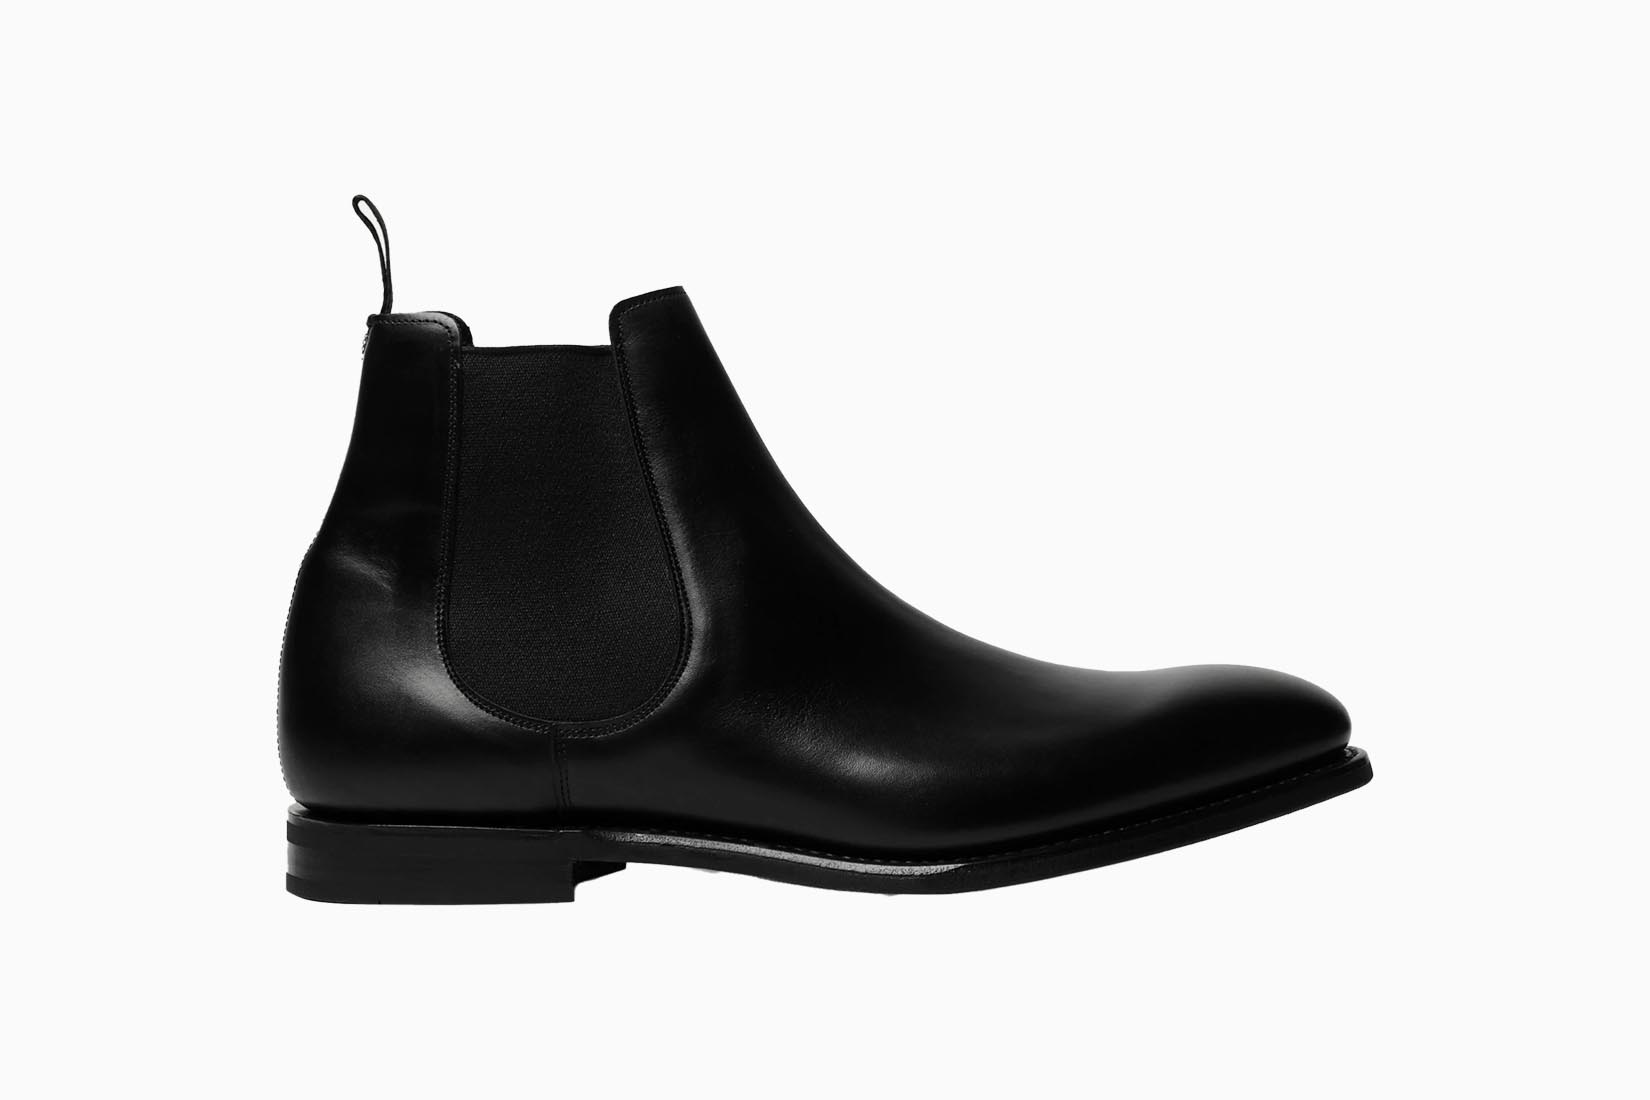 best boots men churchs leather chelsea boots review Luxe Digital